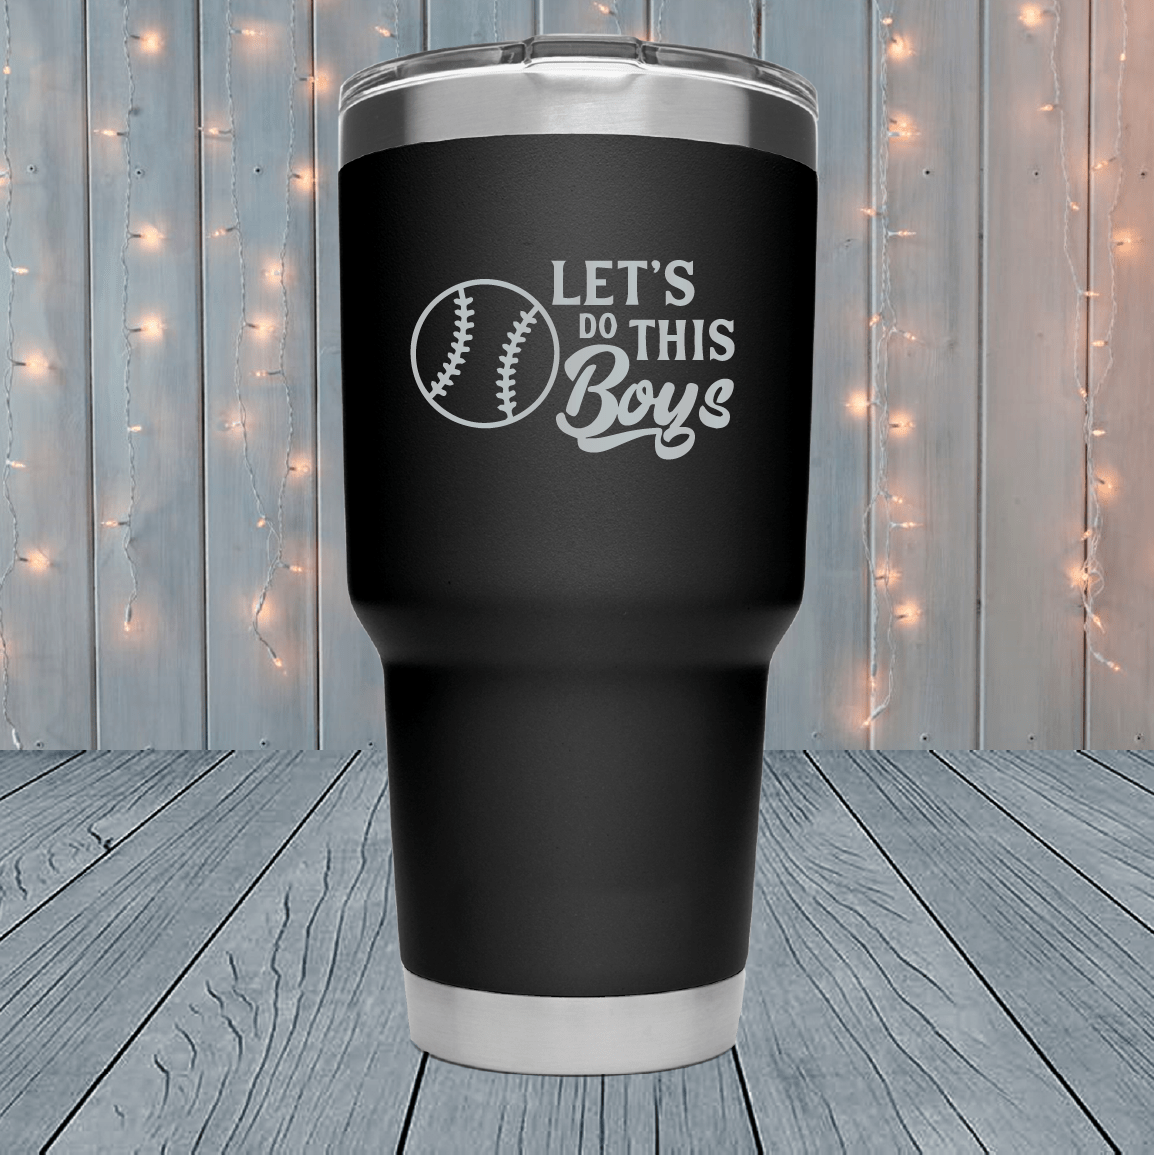 Let's Do This Boys Laser Engraved Tumblers